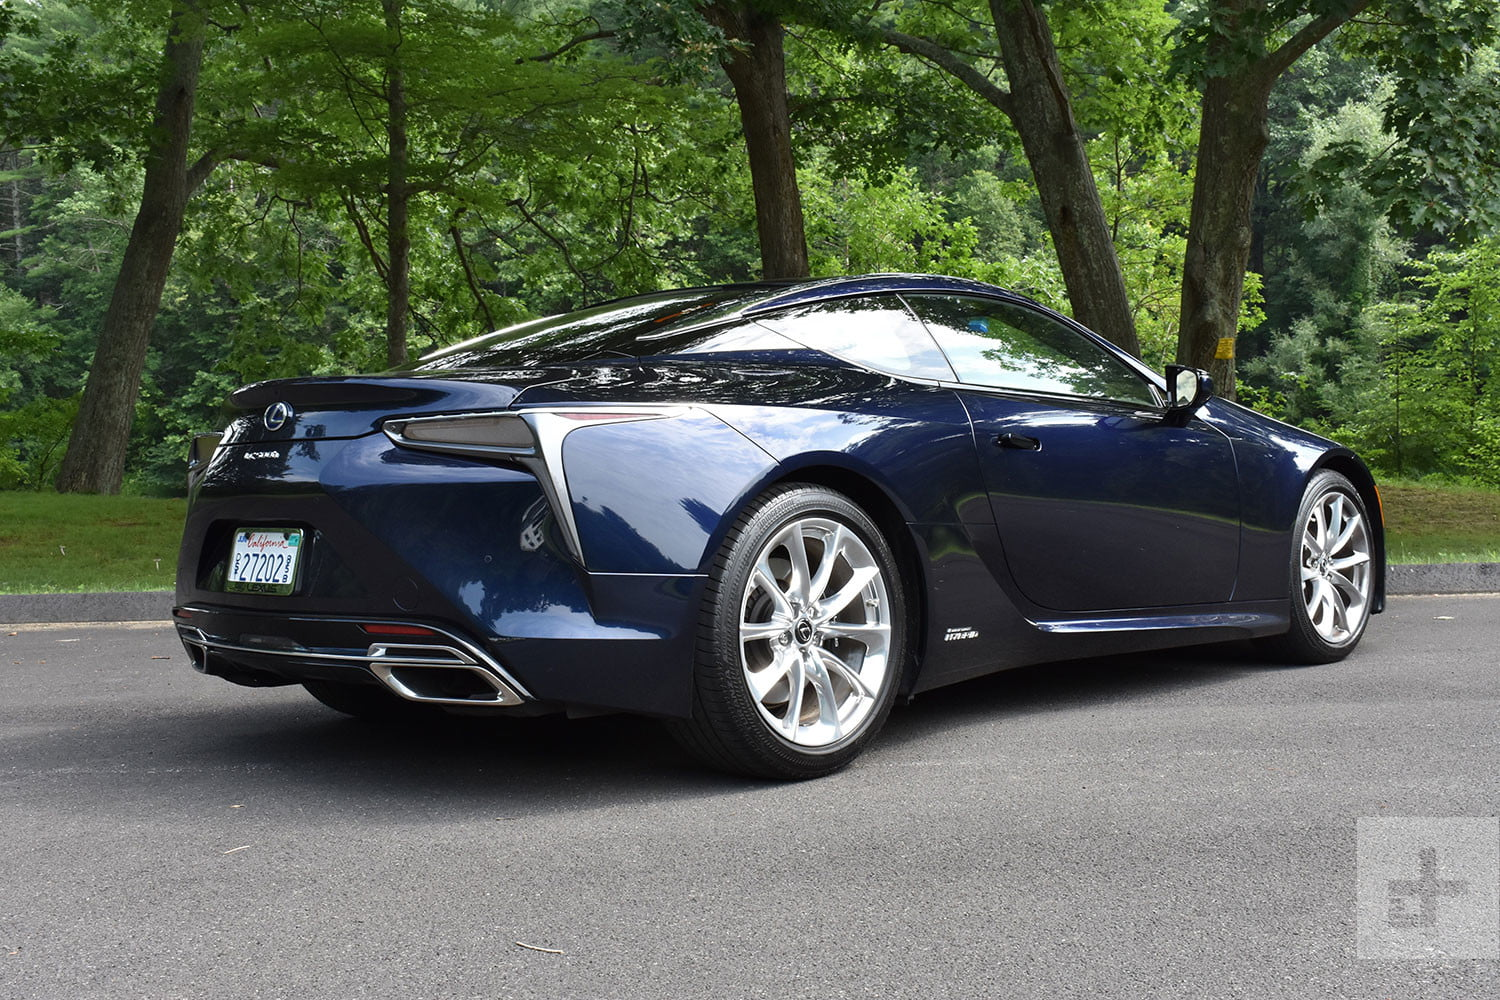 2018 lexus lc 500h review digital trends. Black Bedroom Furniture Sets. Home Design Ideas